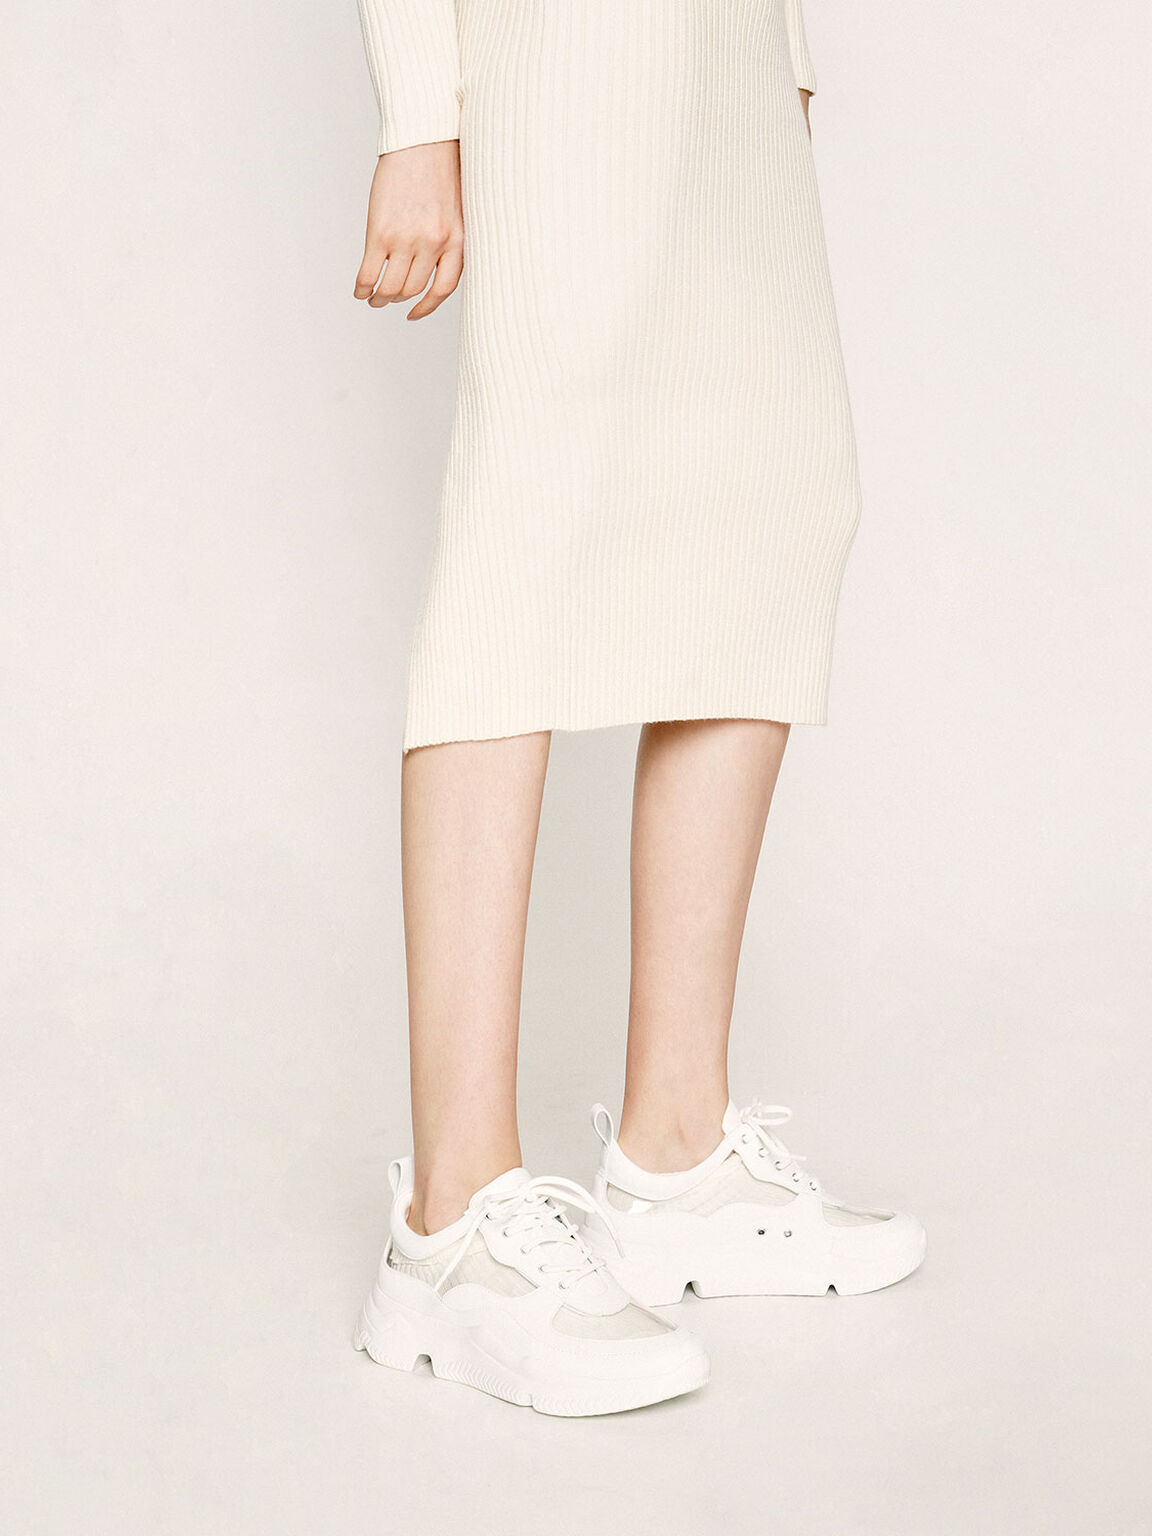 See-Through Chunky Sneakers, White, hi-res